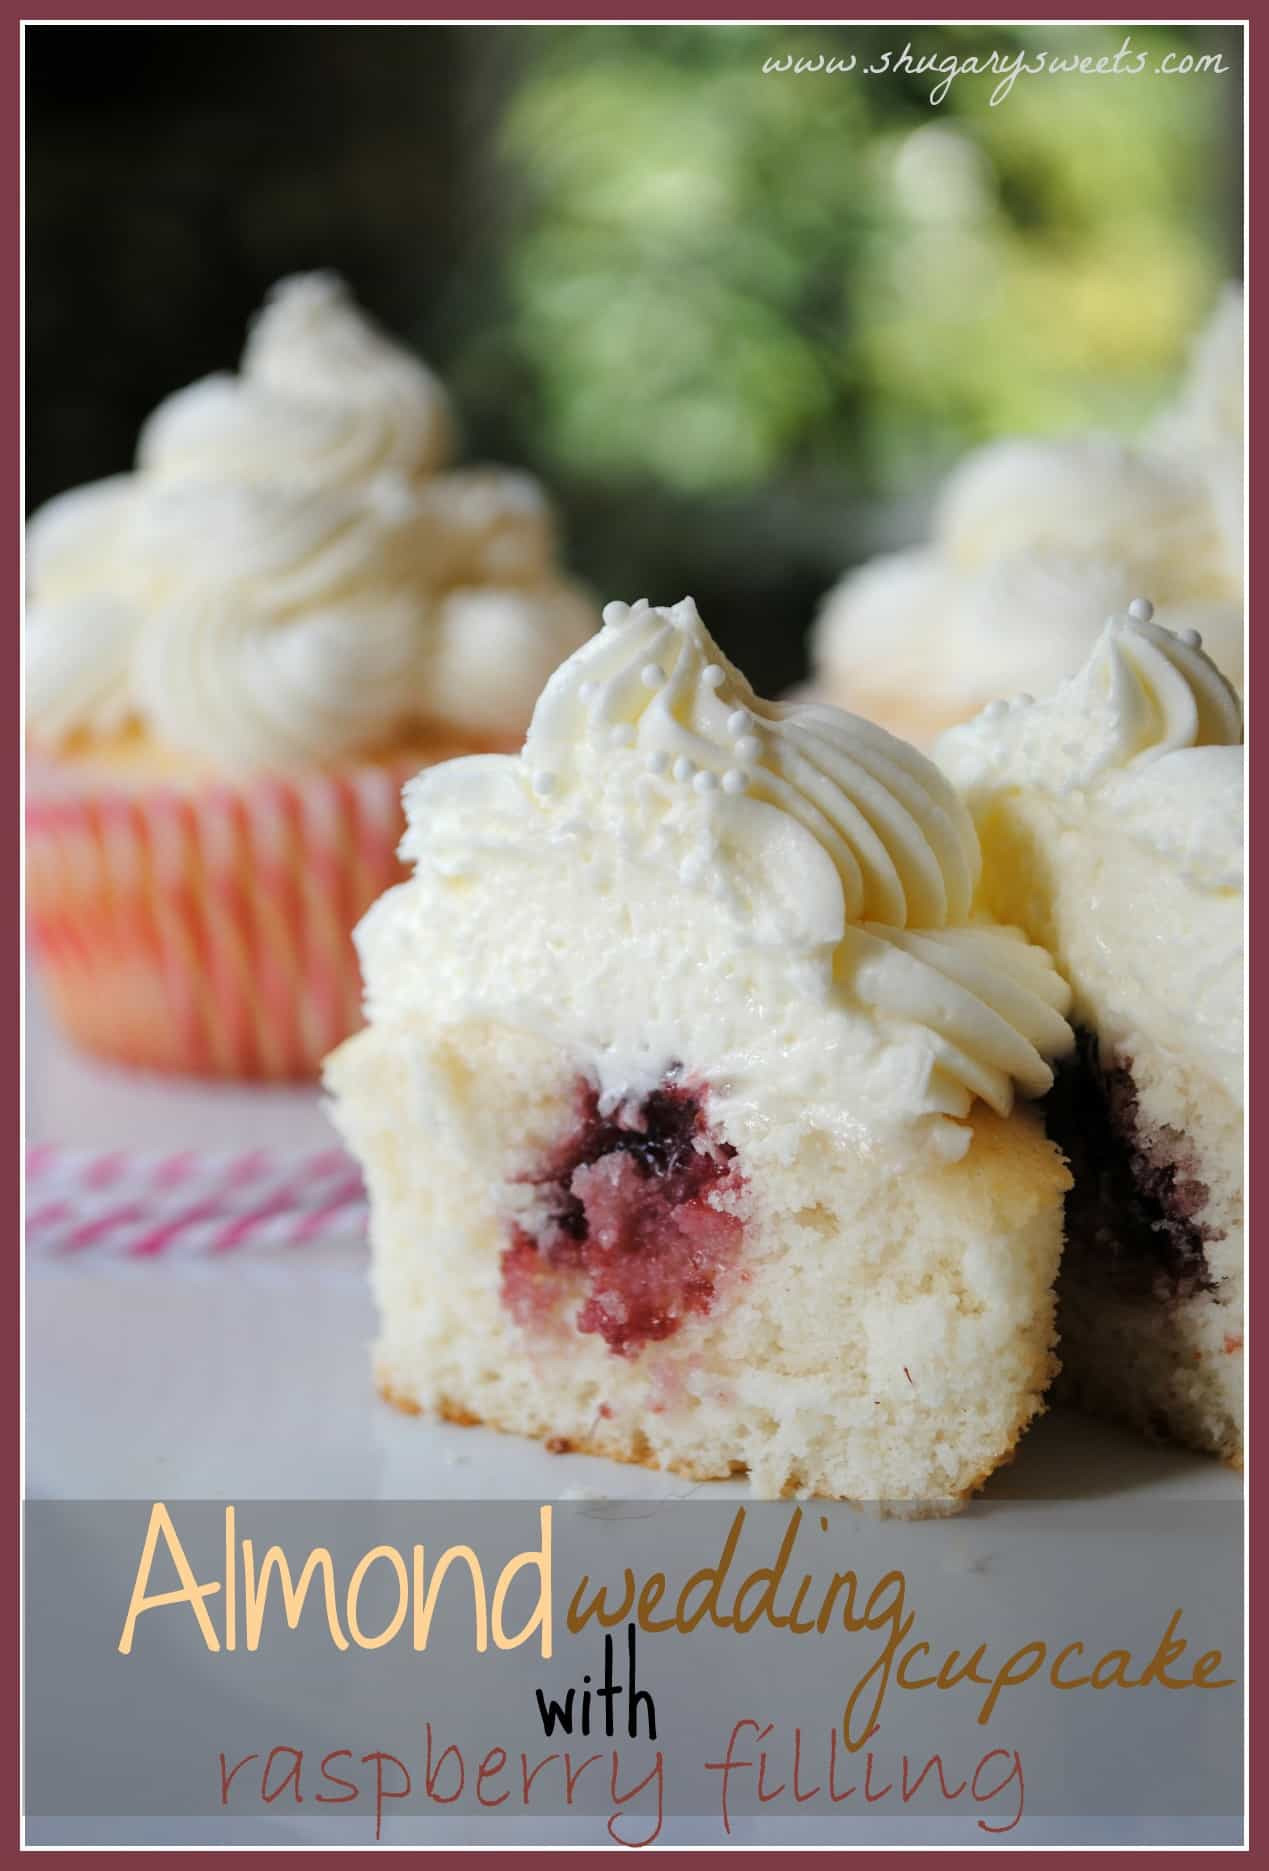 Wedding Cake Filling Recipe  Almond Wedding Cake Cupcakes with Raspberry Filling